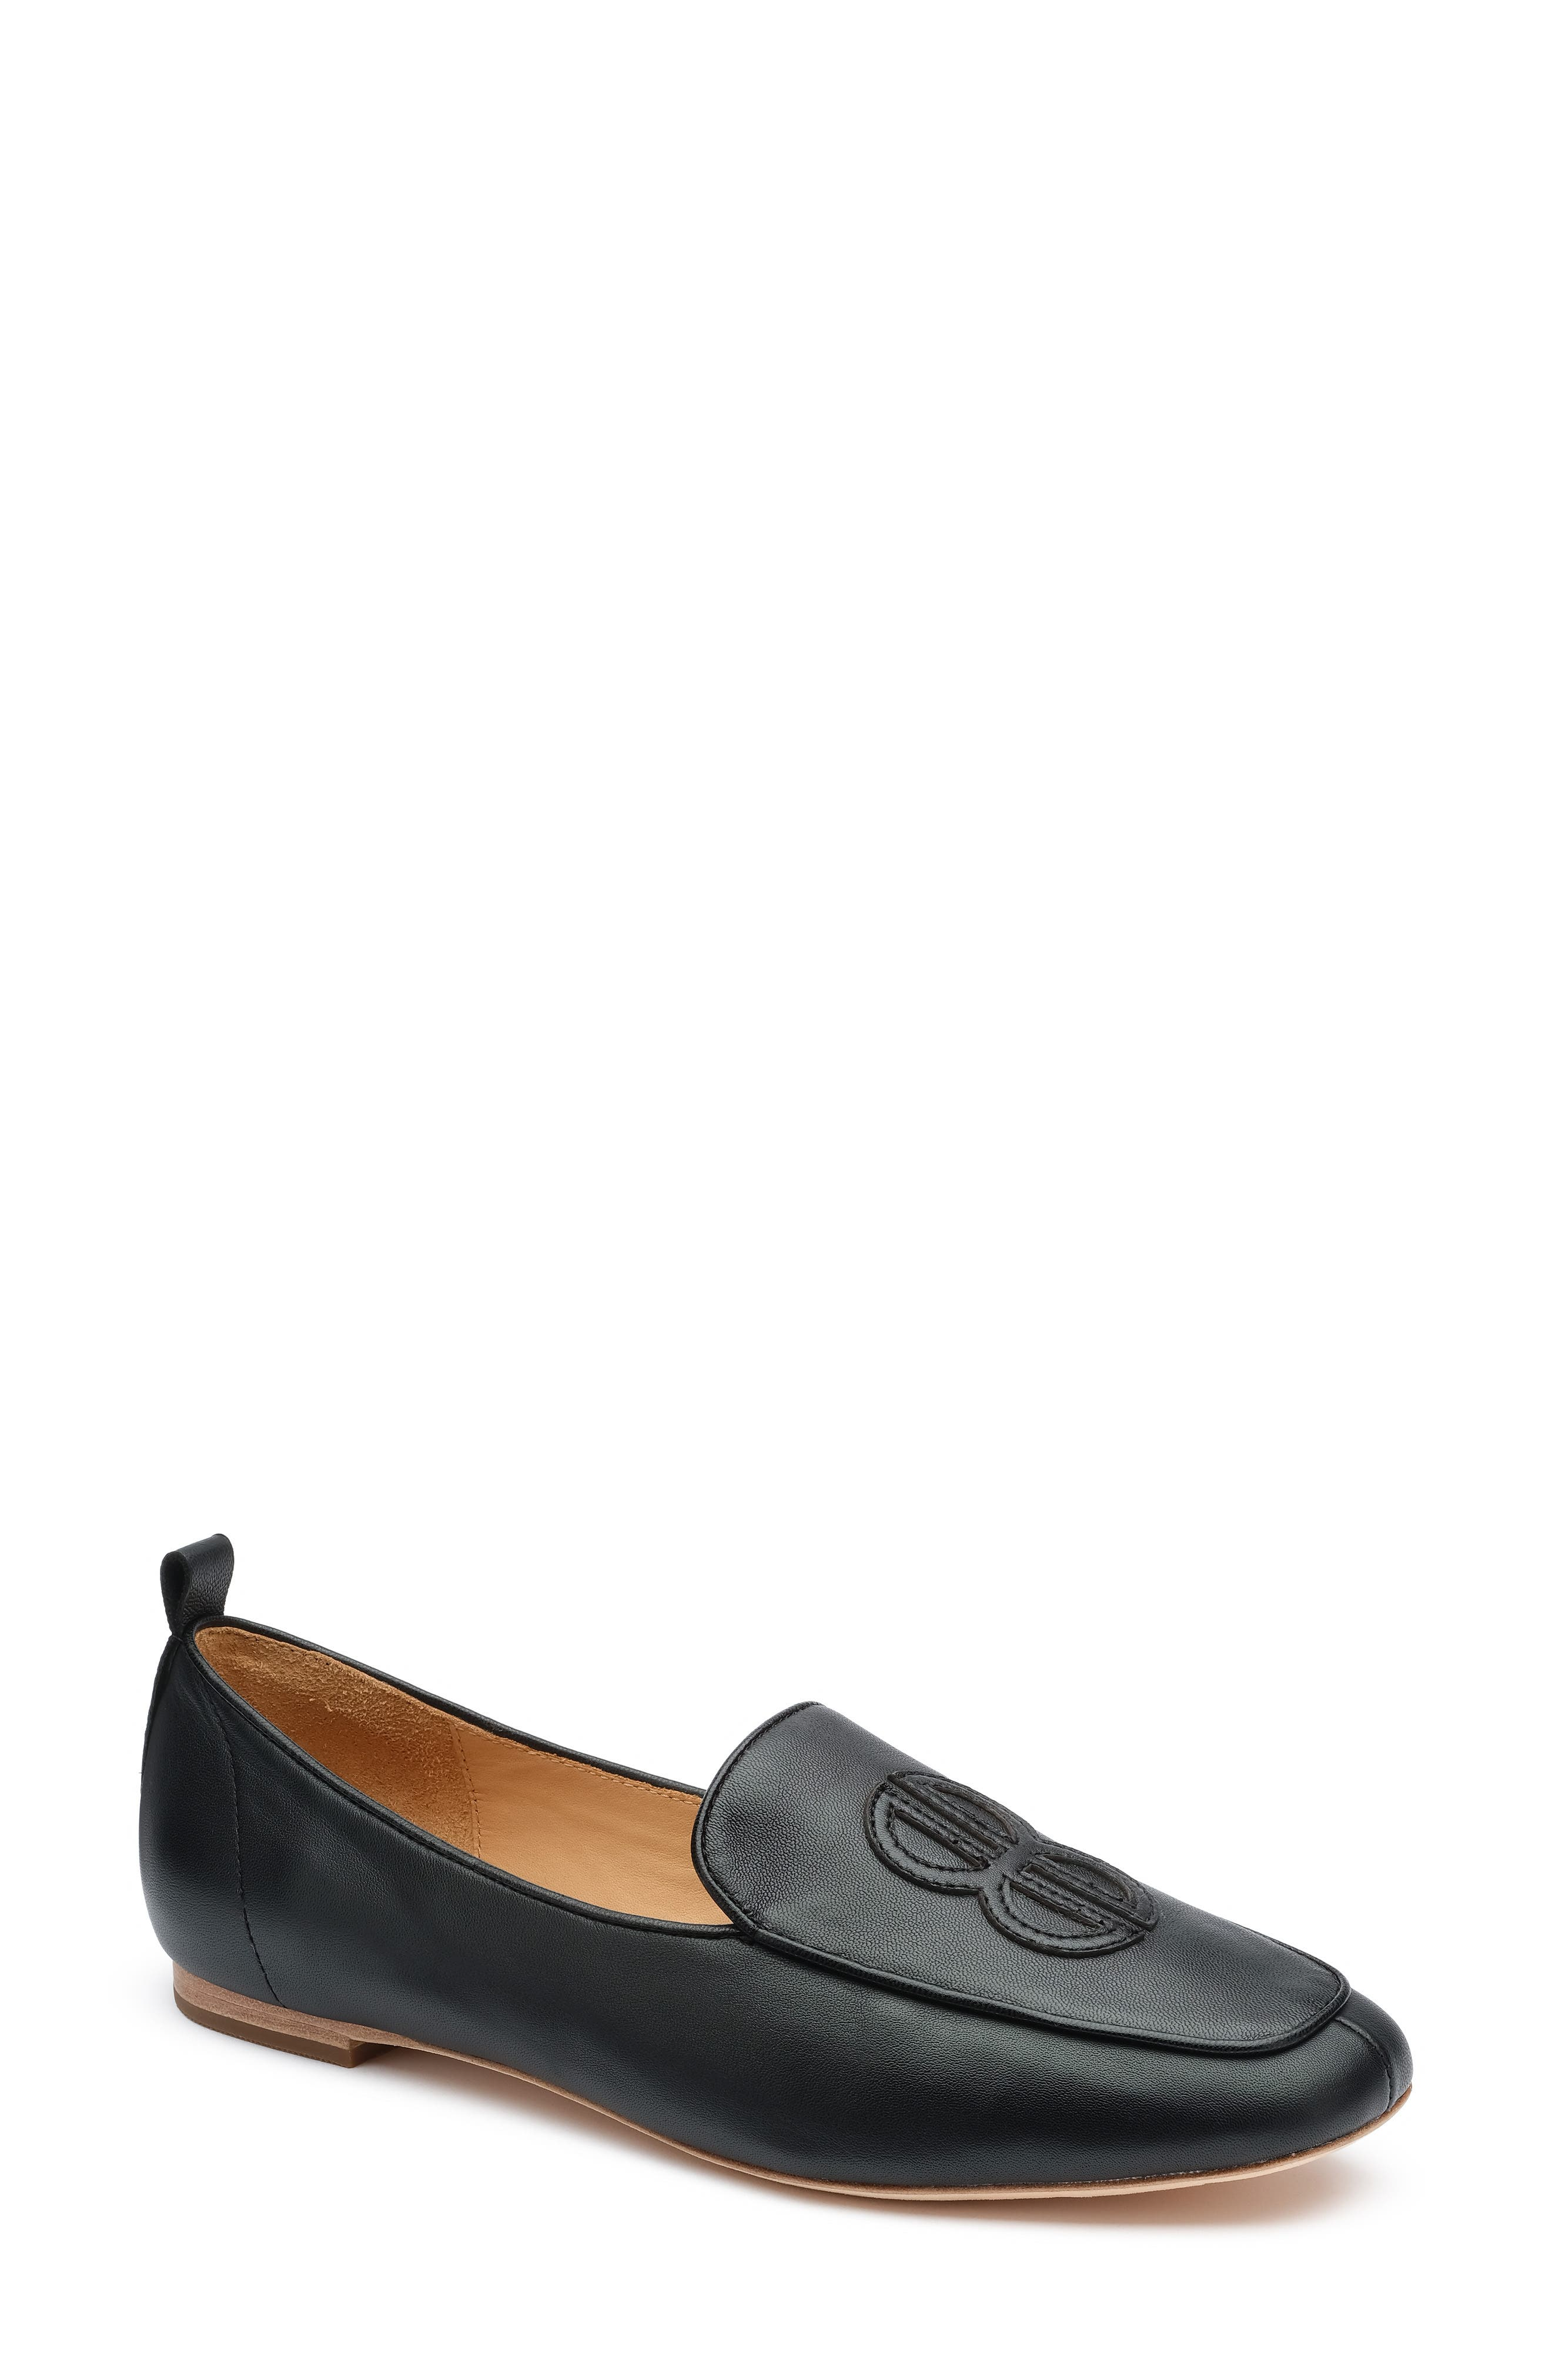 Bill Blass Aiden Loafer- Black